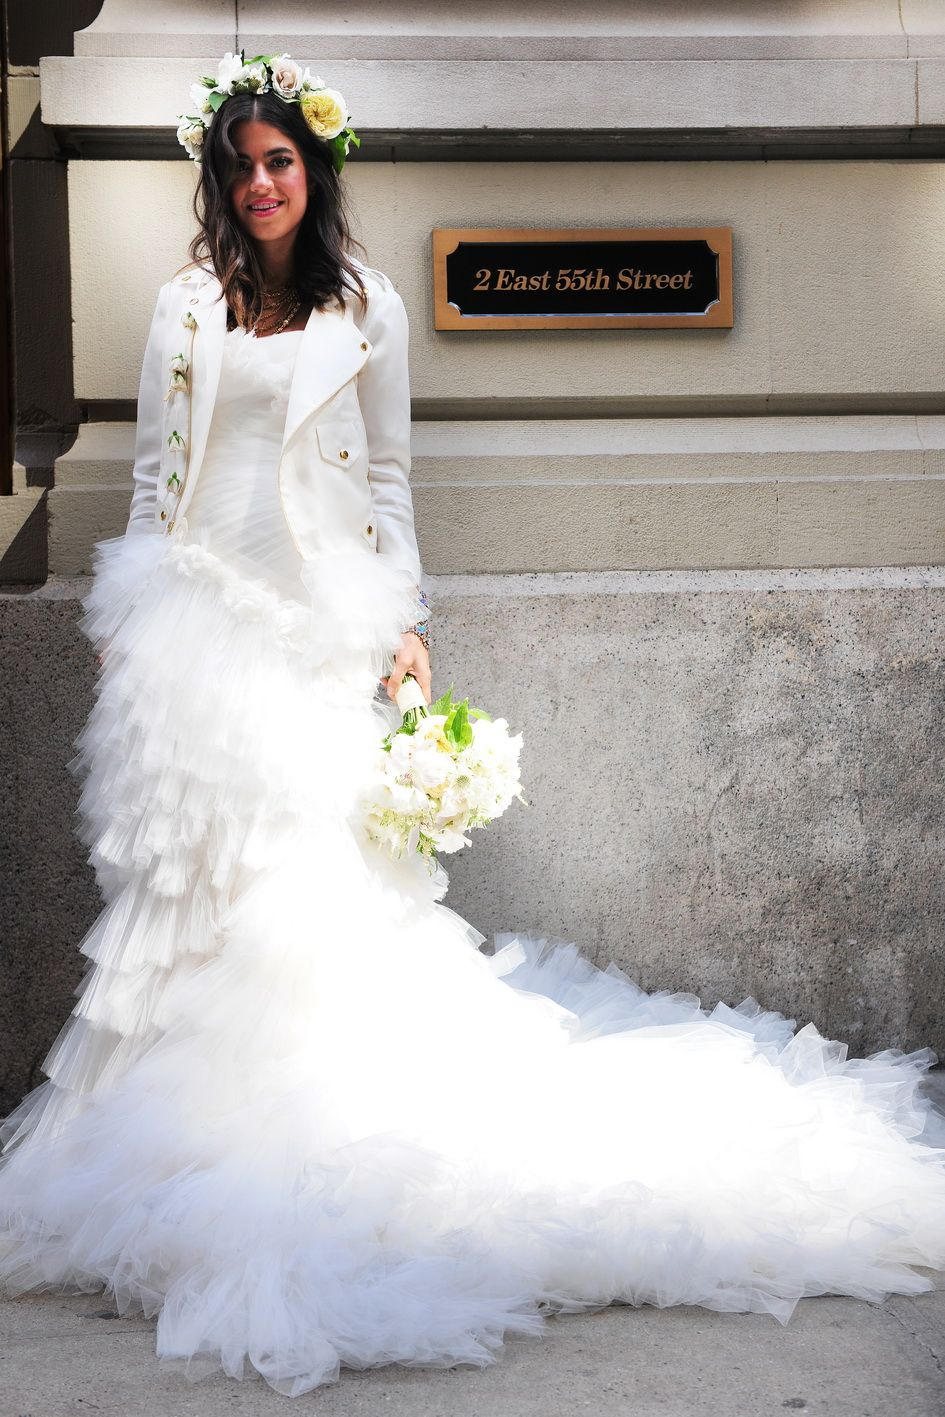 Thematic Repelling: Wedding Day | wedding | Pinterest | Leandra ...